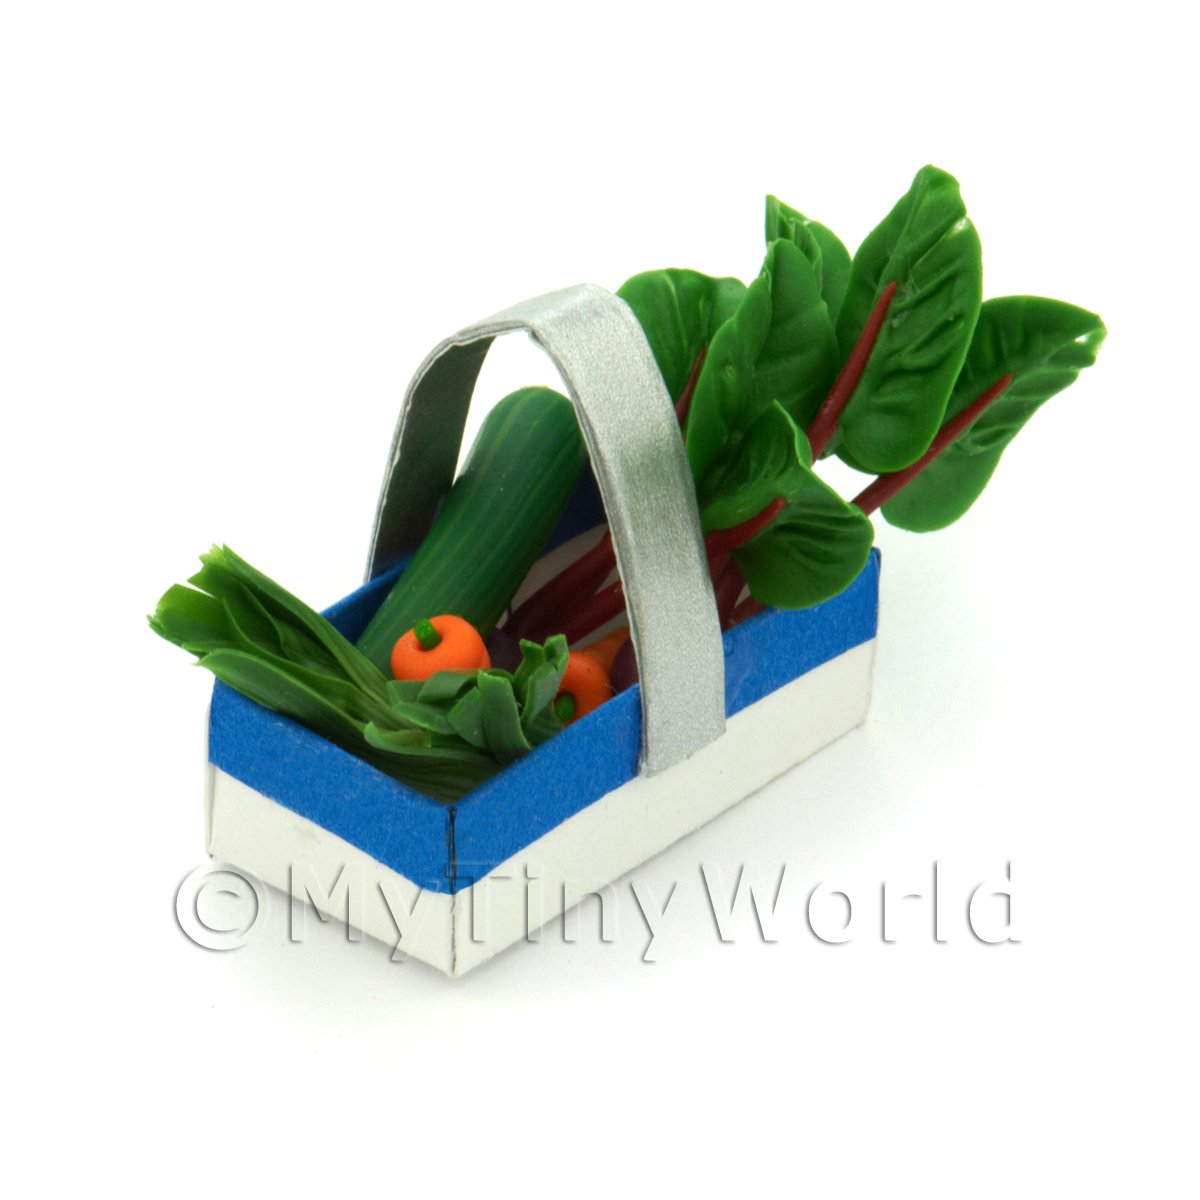 Handmade Dolls House Miniature Punnet With Mixed Vegetables